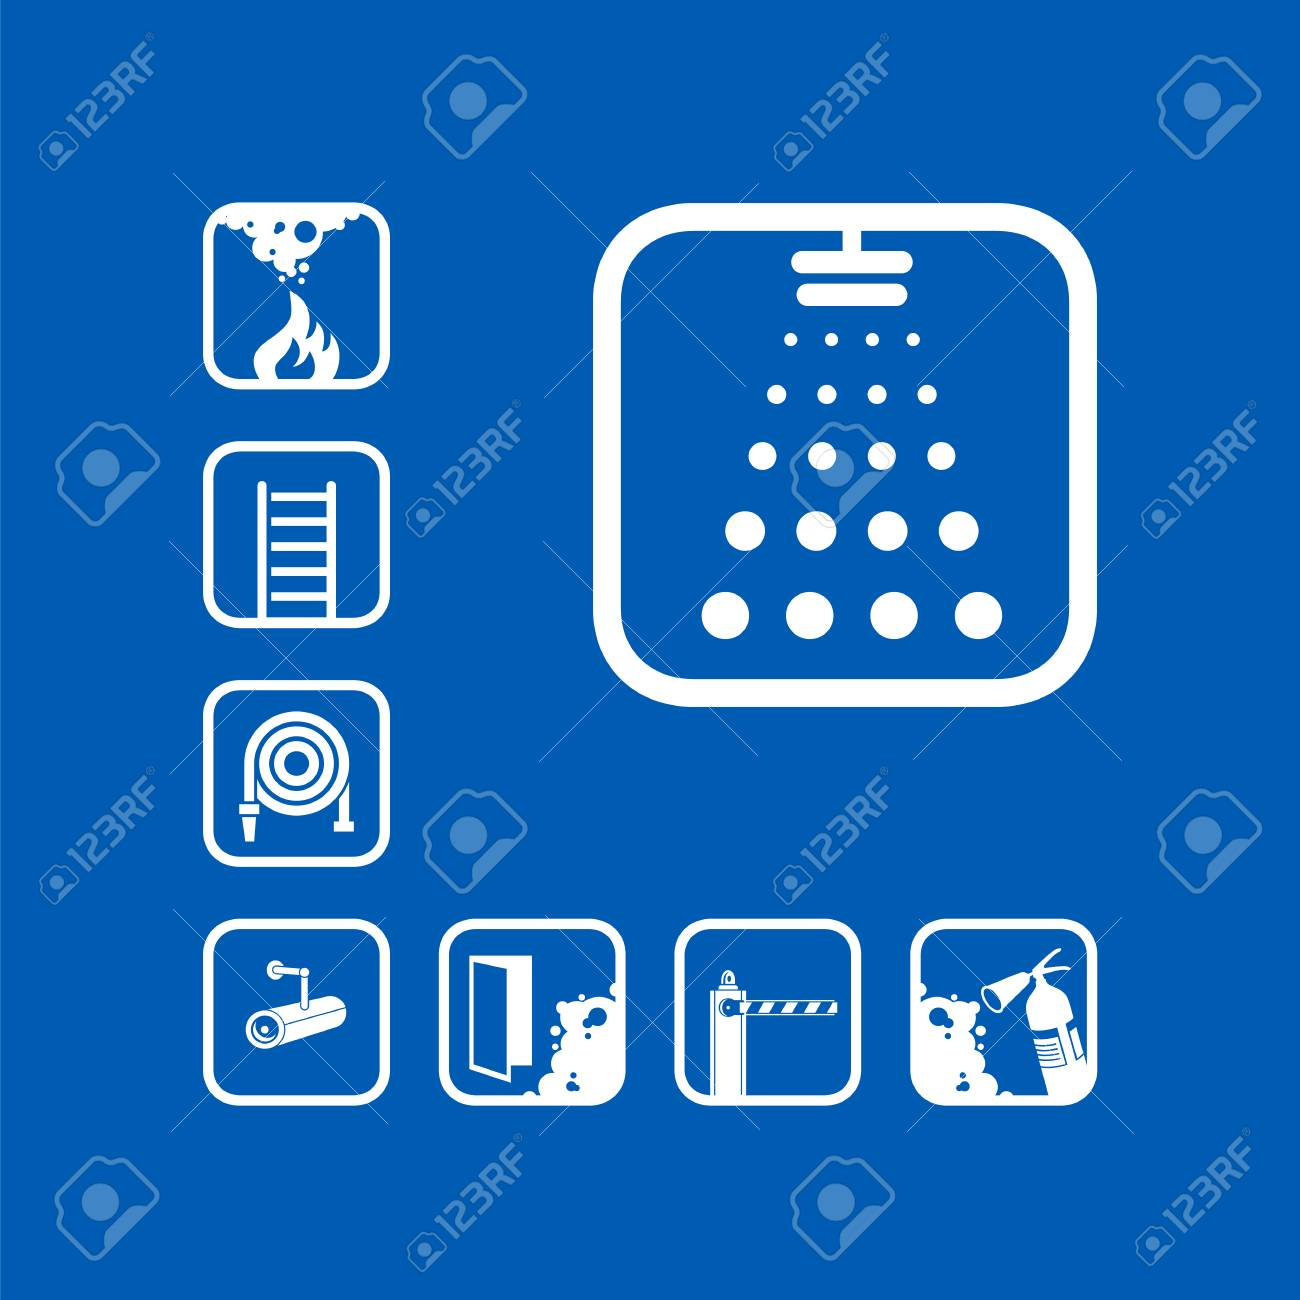 Fire Sprinkler System And Device Vector Icon Sets Design Exclusive Diagram Symbols Graphic Pictograms